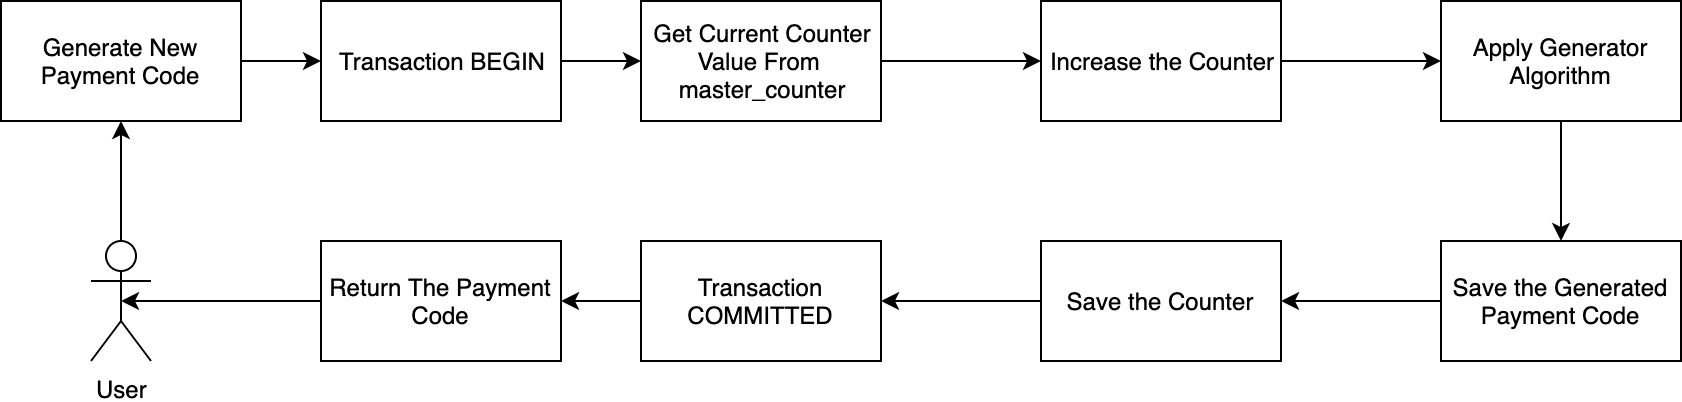 Flow the Generating Payment Code